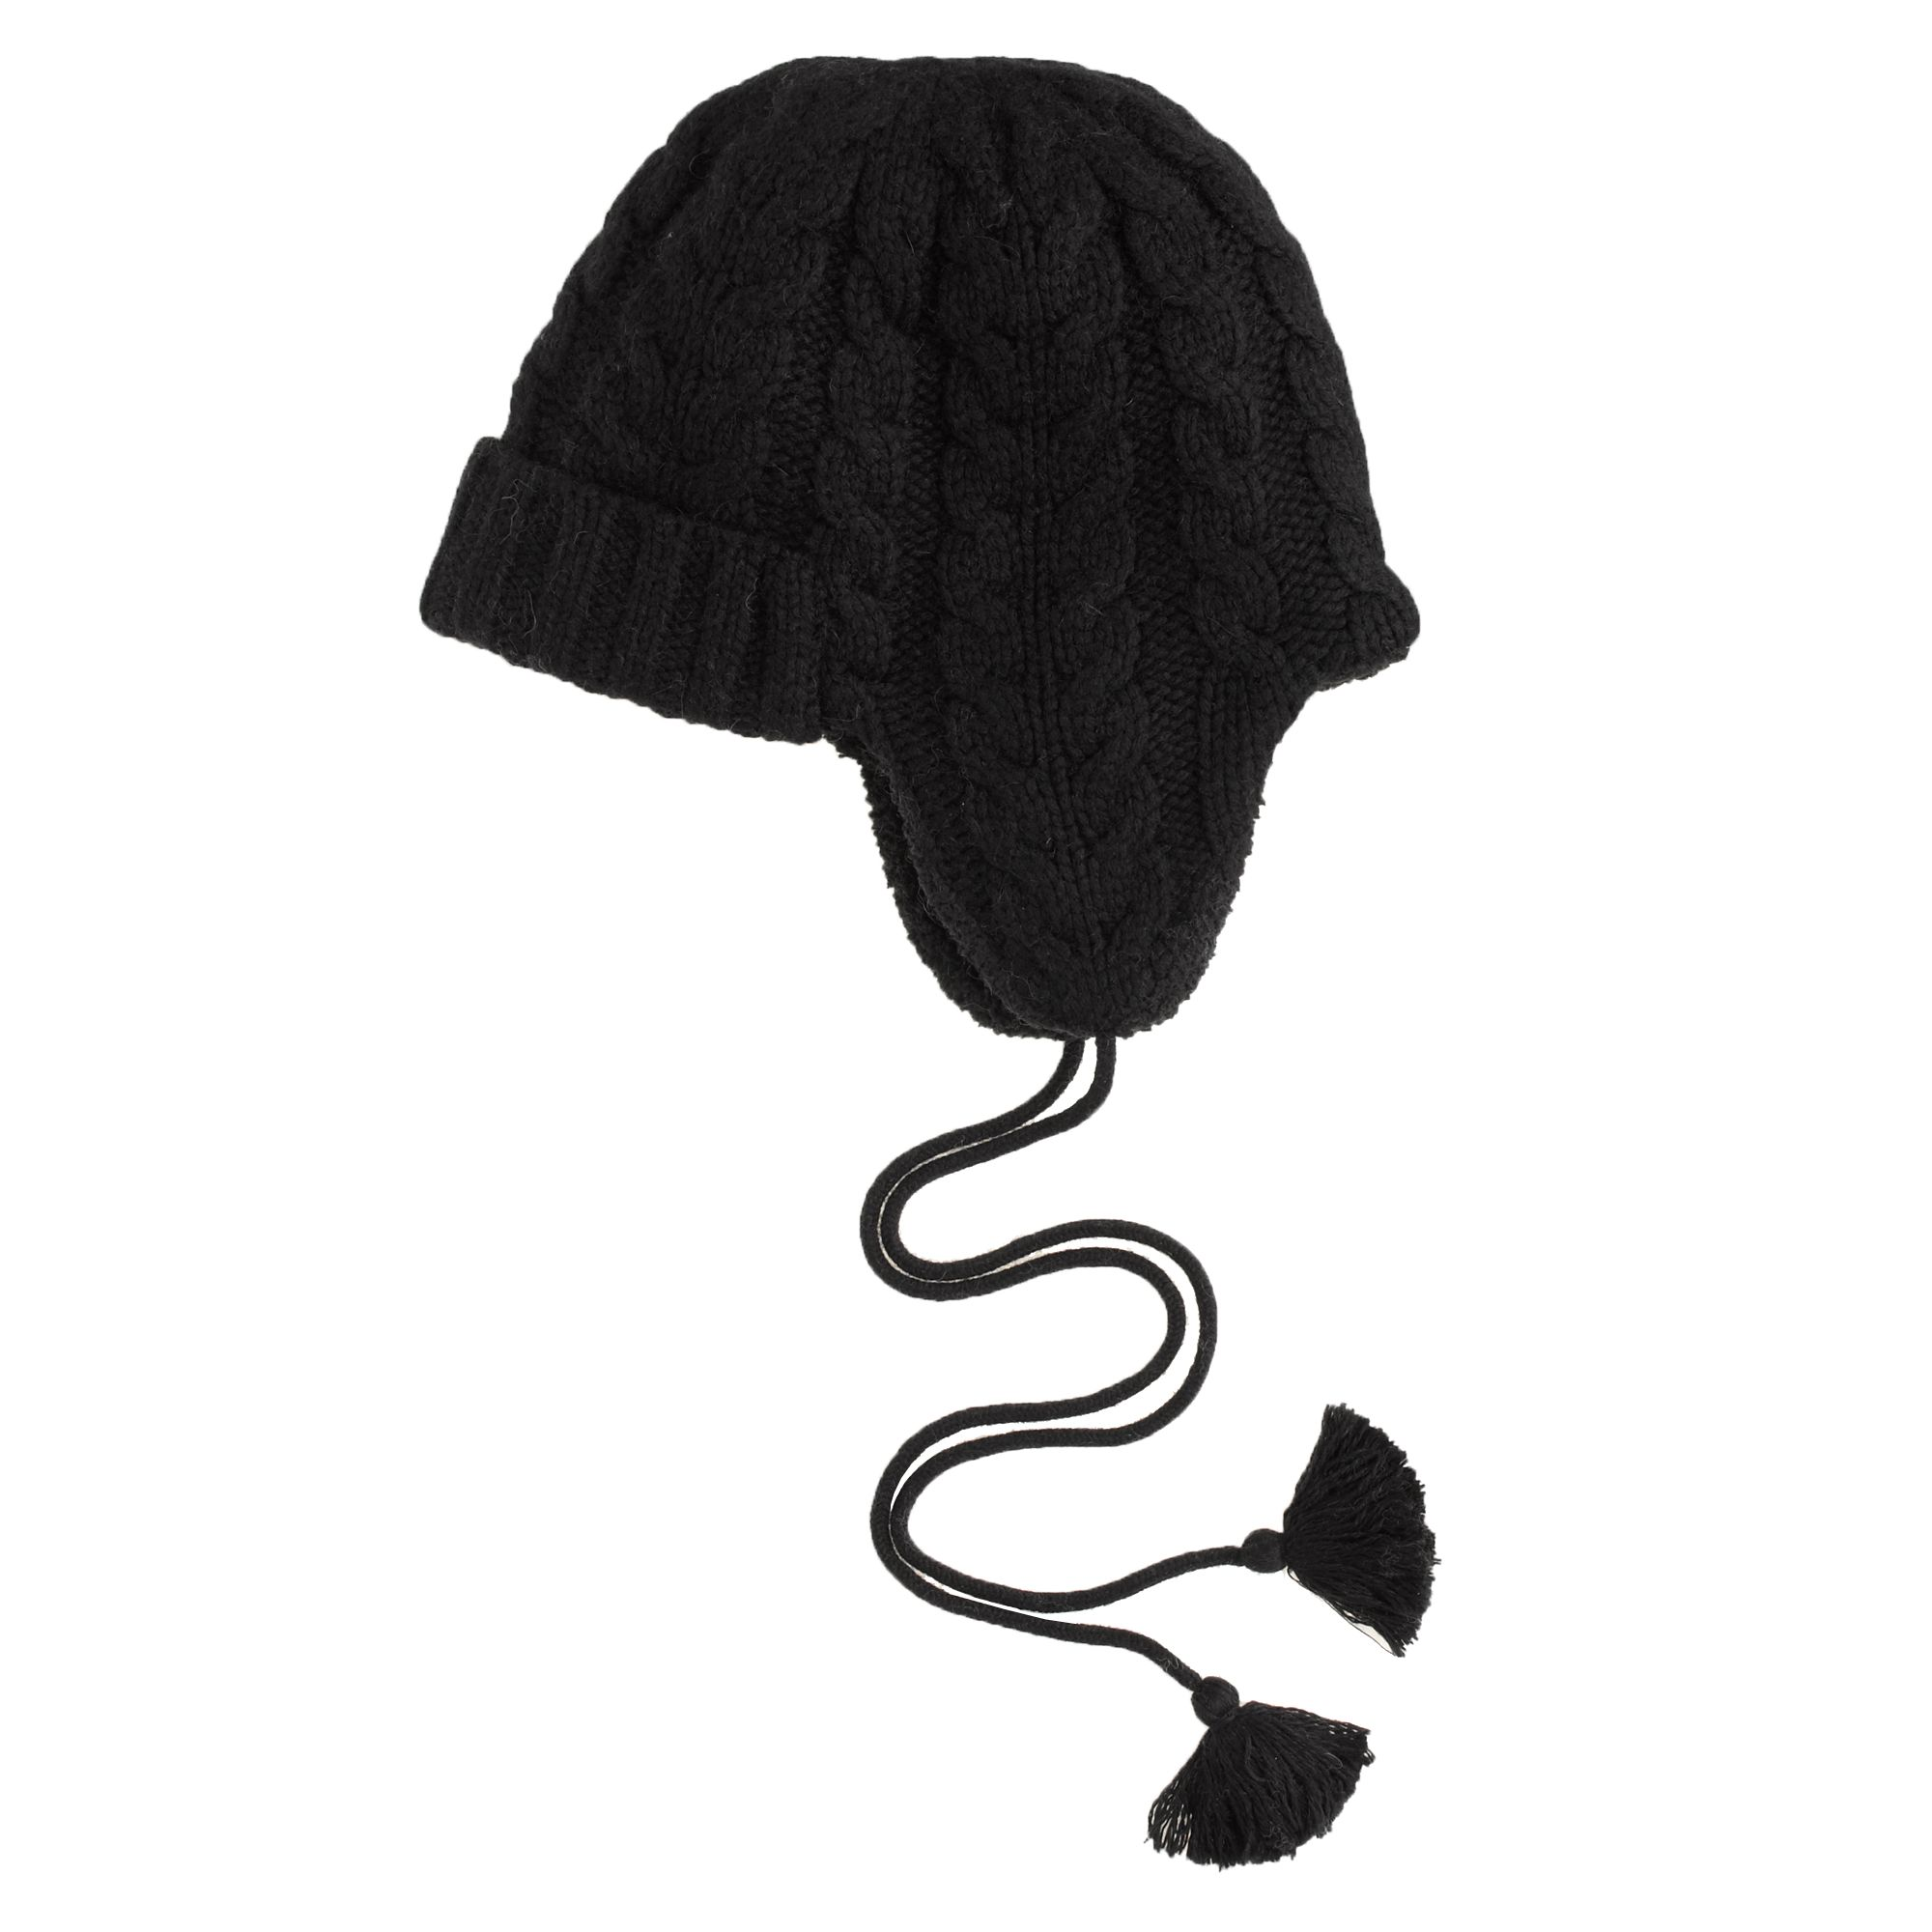 294726ae6 Lyst - J.Crew Cableknit Trapper Hat in Black